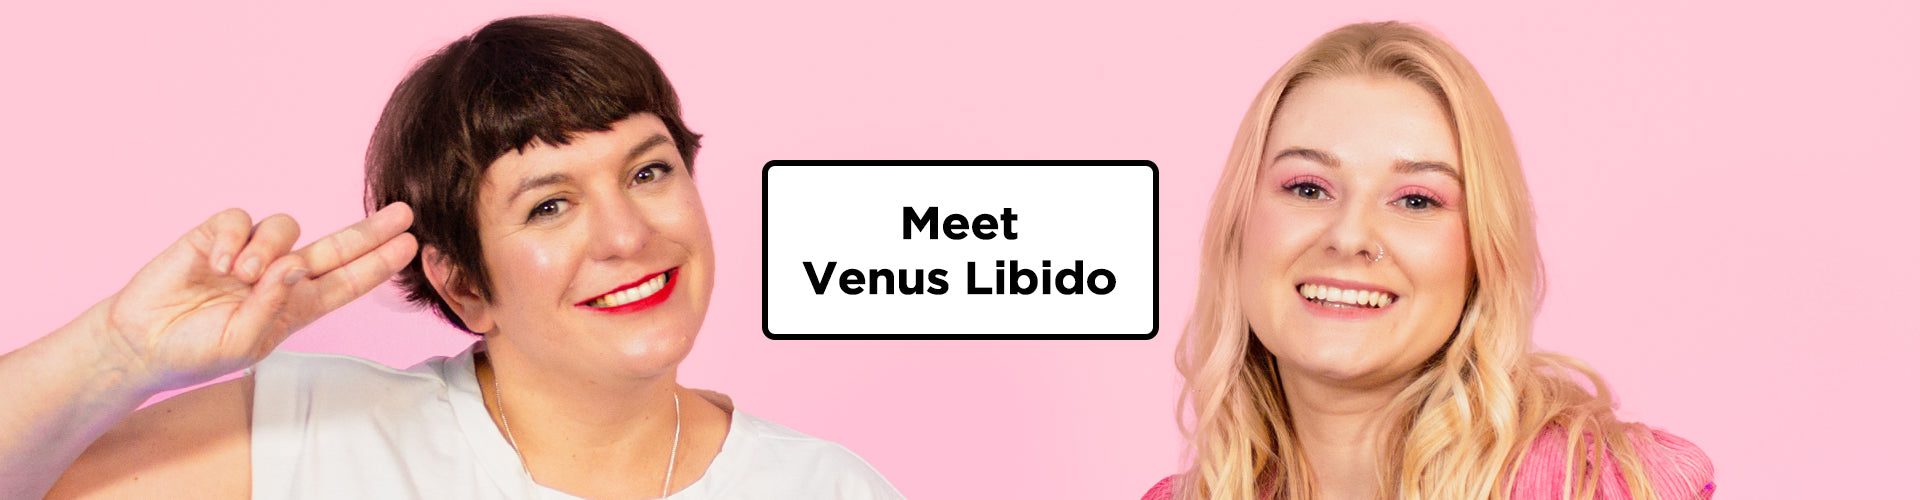 Meet Venus Libido, our latest collaborator!